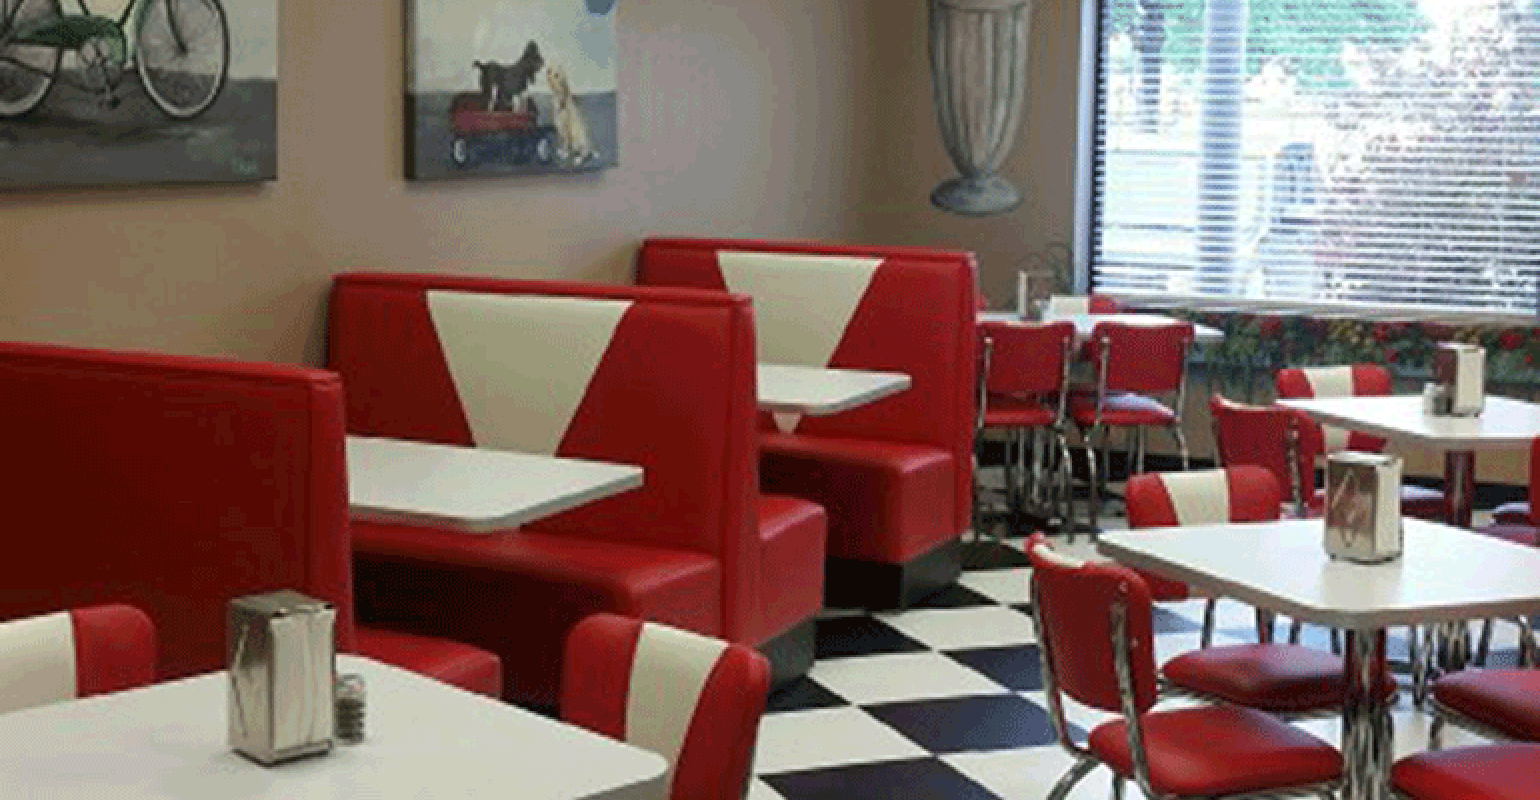 Diner Decor Used To Draw Kids To Summer Feeding Site Food Management